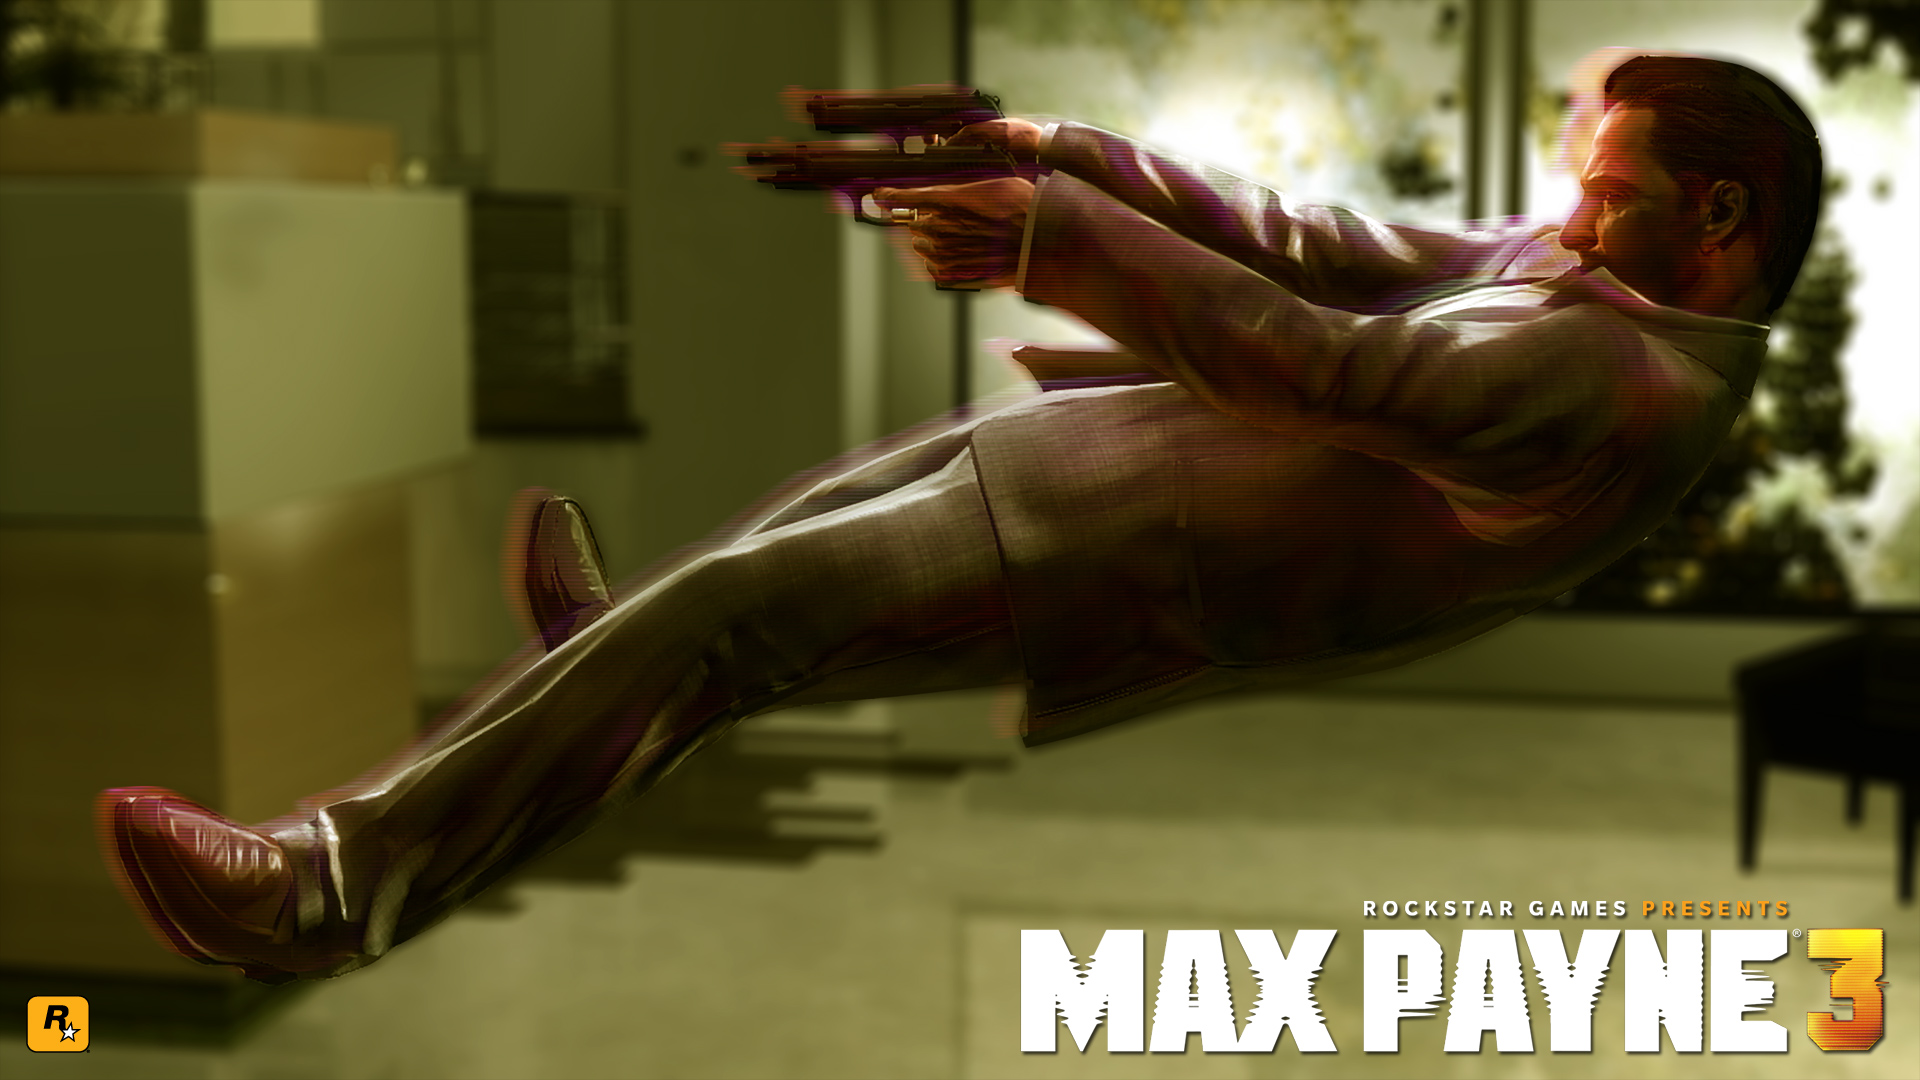 wallpaper action3 maxpayne3 global wallpapers games 1920x1080